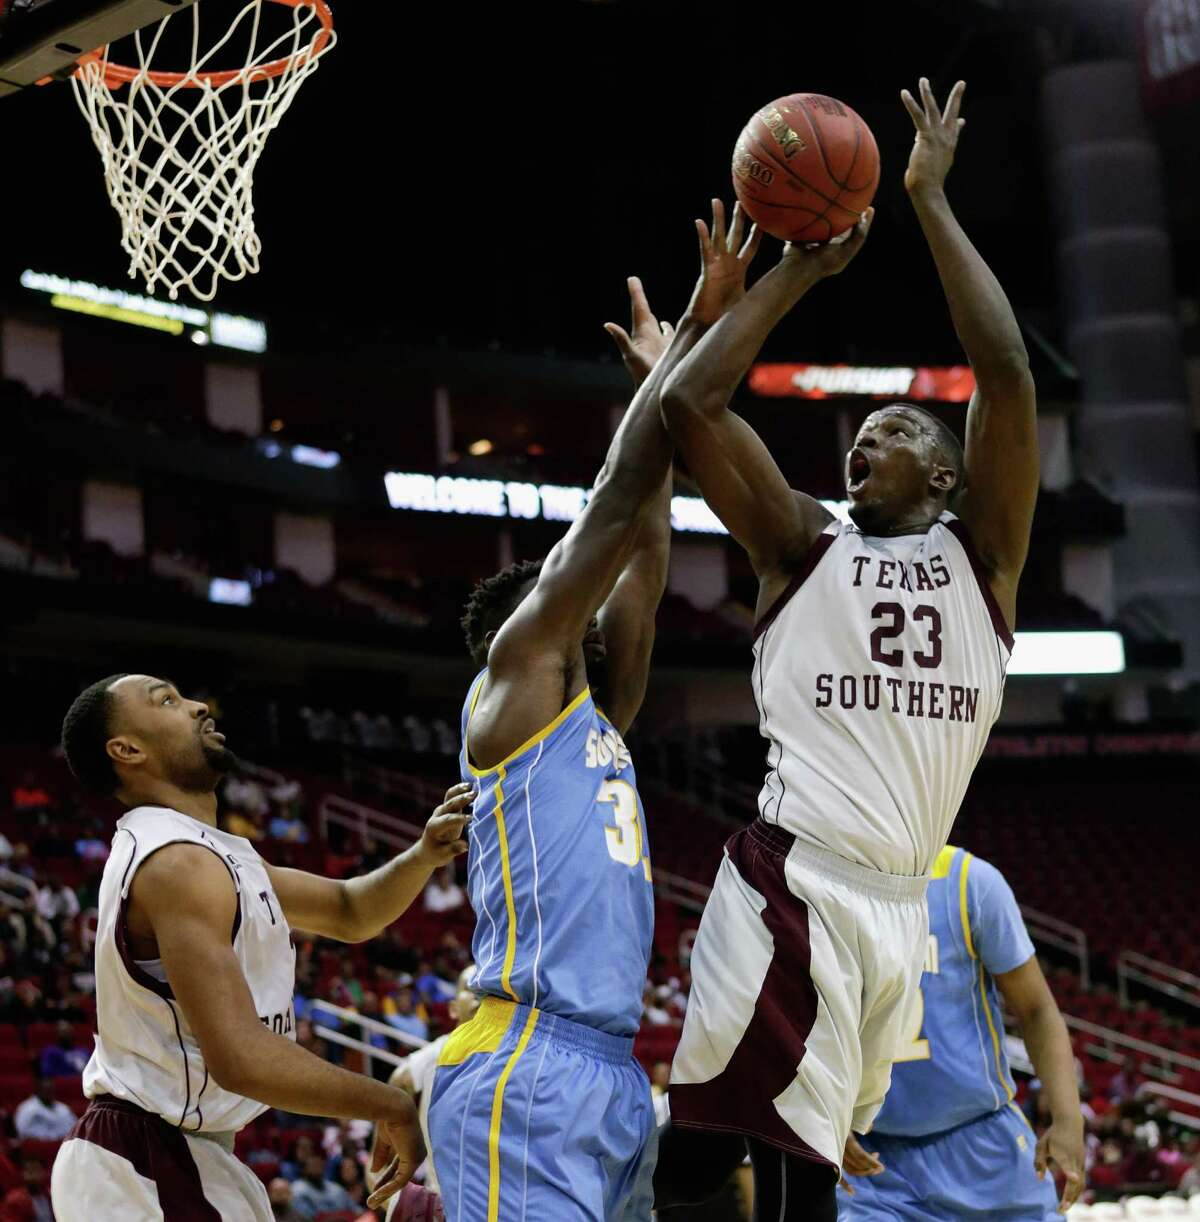 Texas Southern Tigers forward Derrick Griffin (23) shoots over Southern University Jaguars forward D'Adrian Allen (32) during the SWAC basketball tournament Friday, March 11, 2016 at the Toyota Center in Houston.